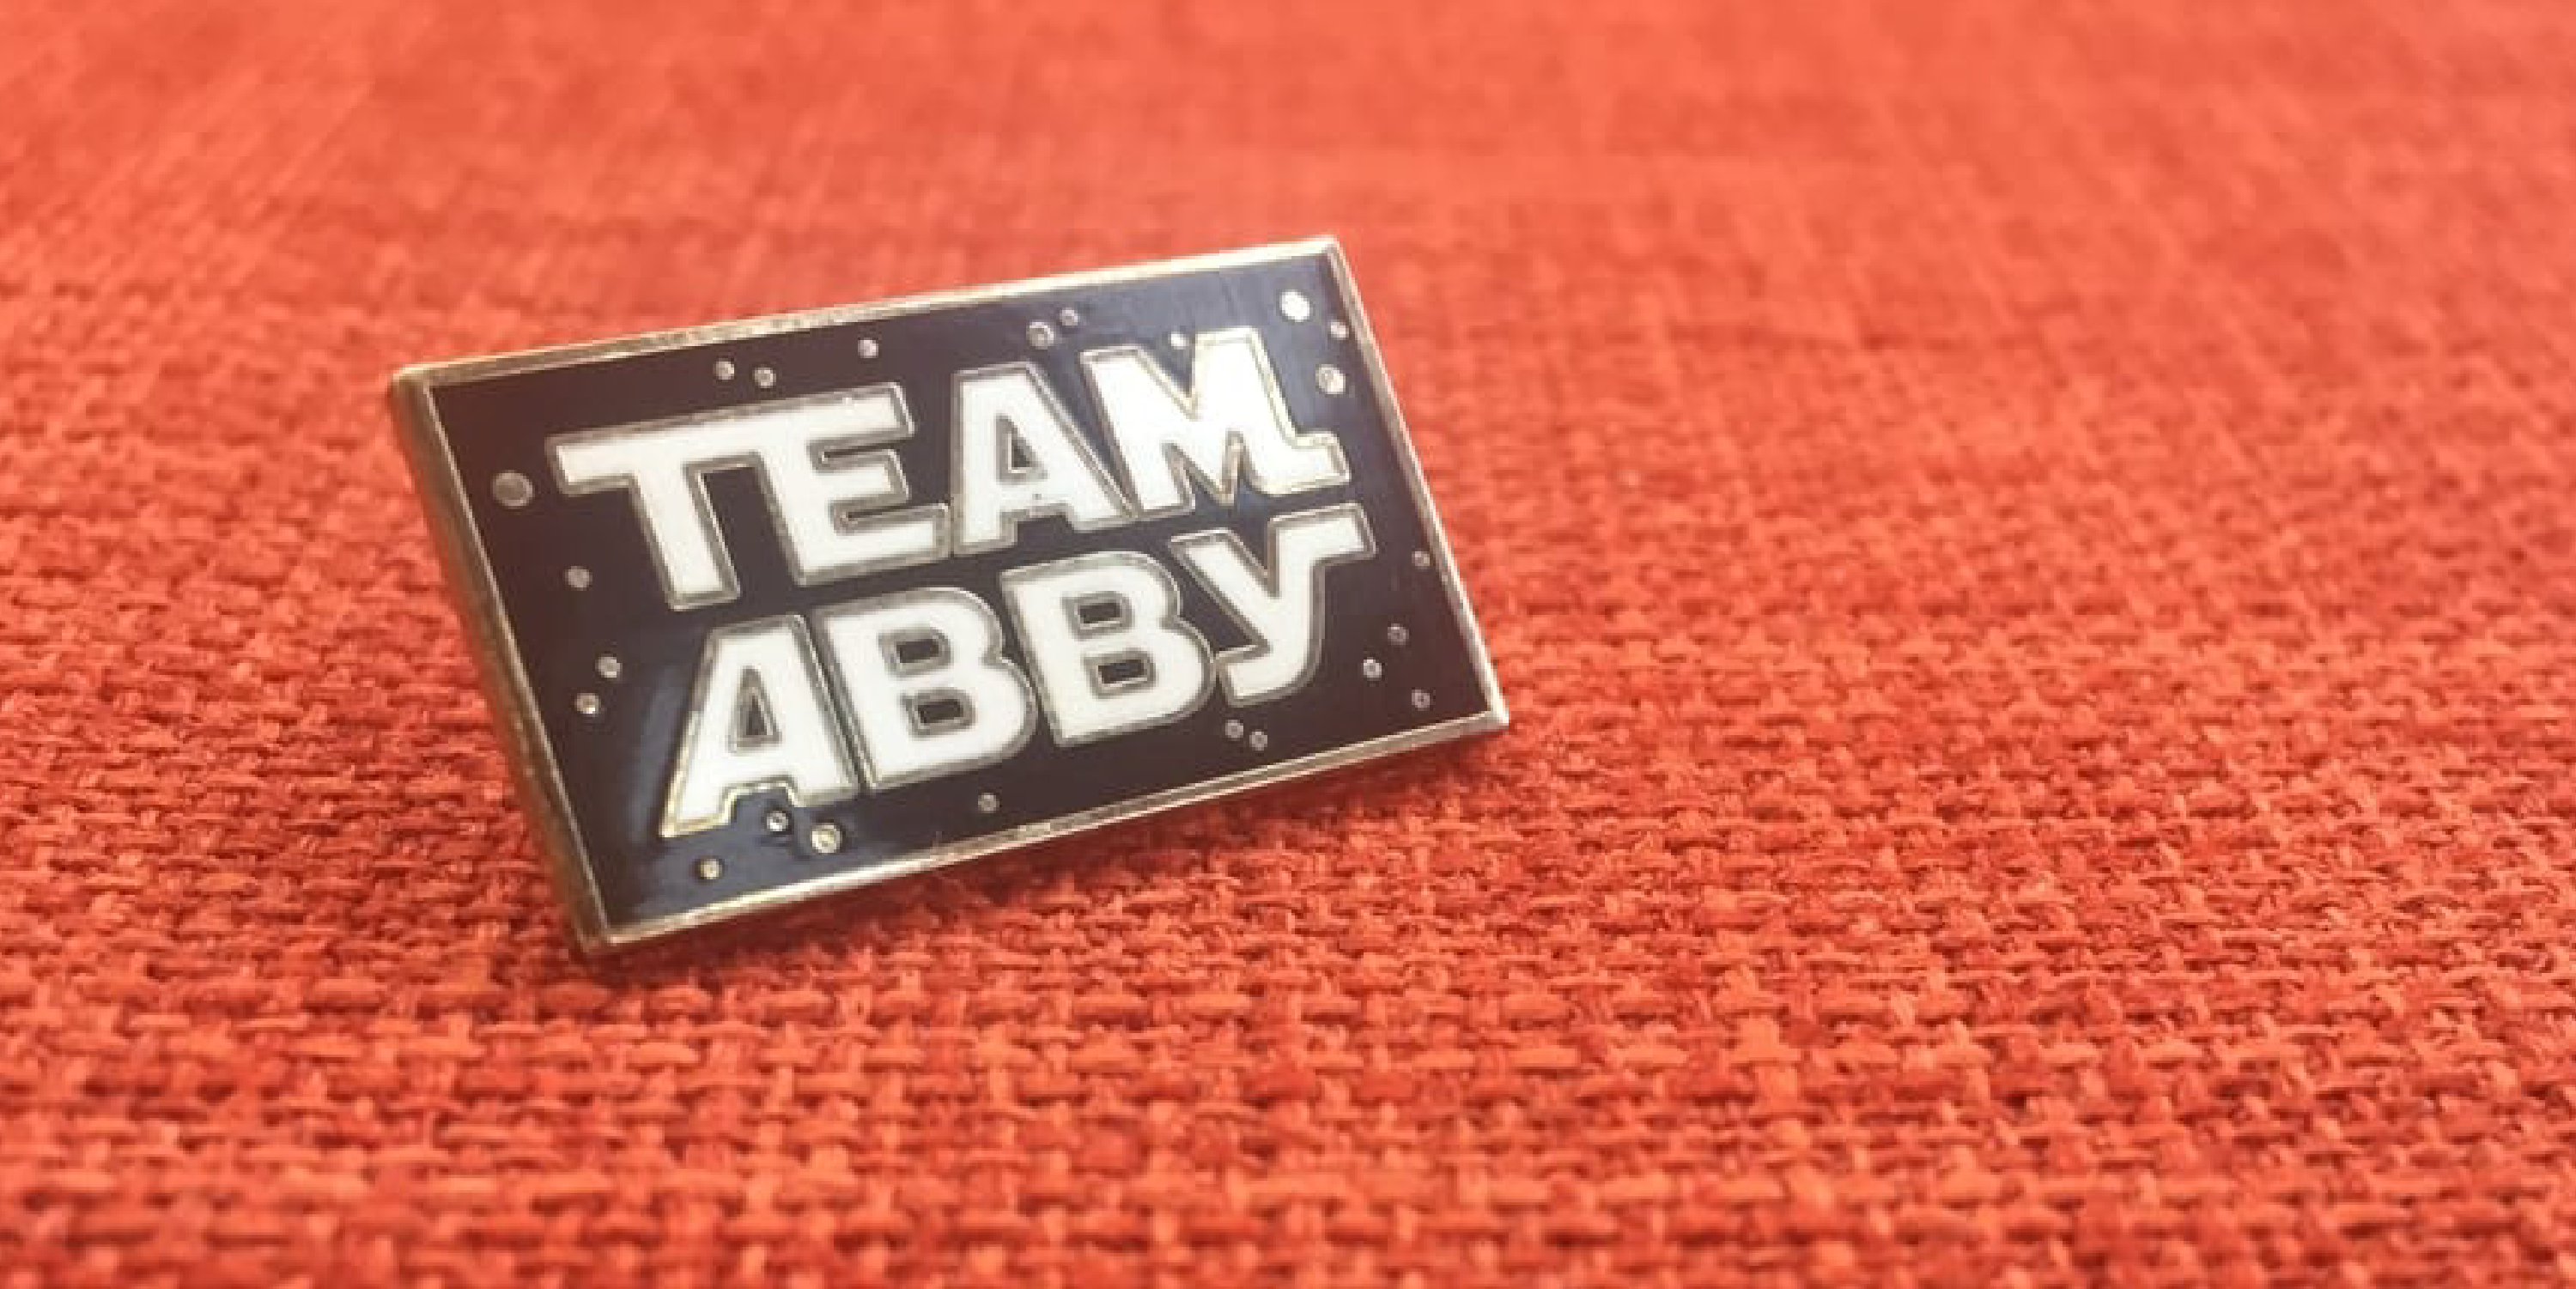 "There is a lapel pin on an orange tablecloth. The lapel pin is black and has the text ""Team Abby"" drawn to look like the Star Wars logo."